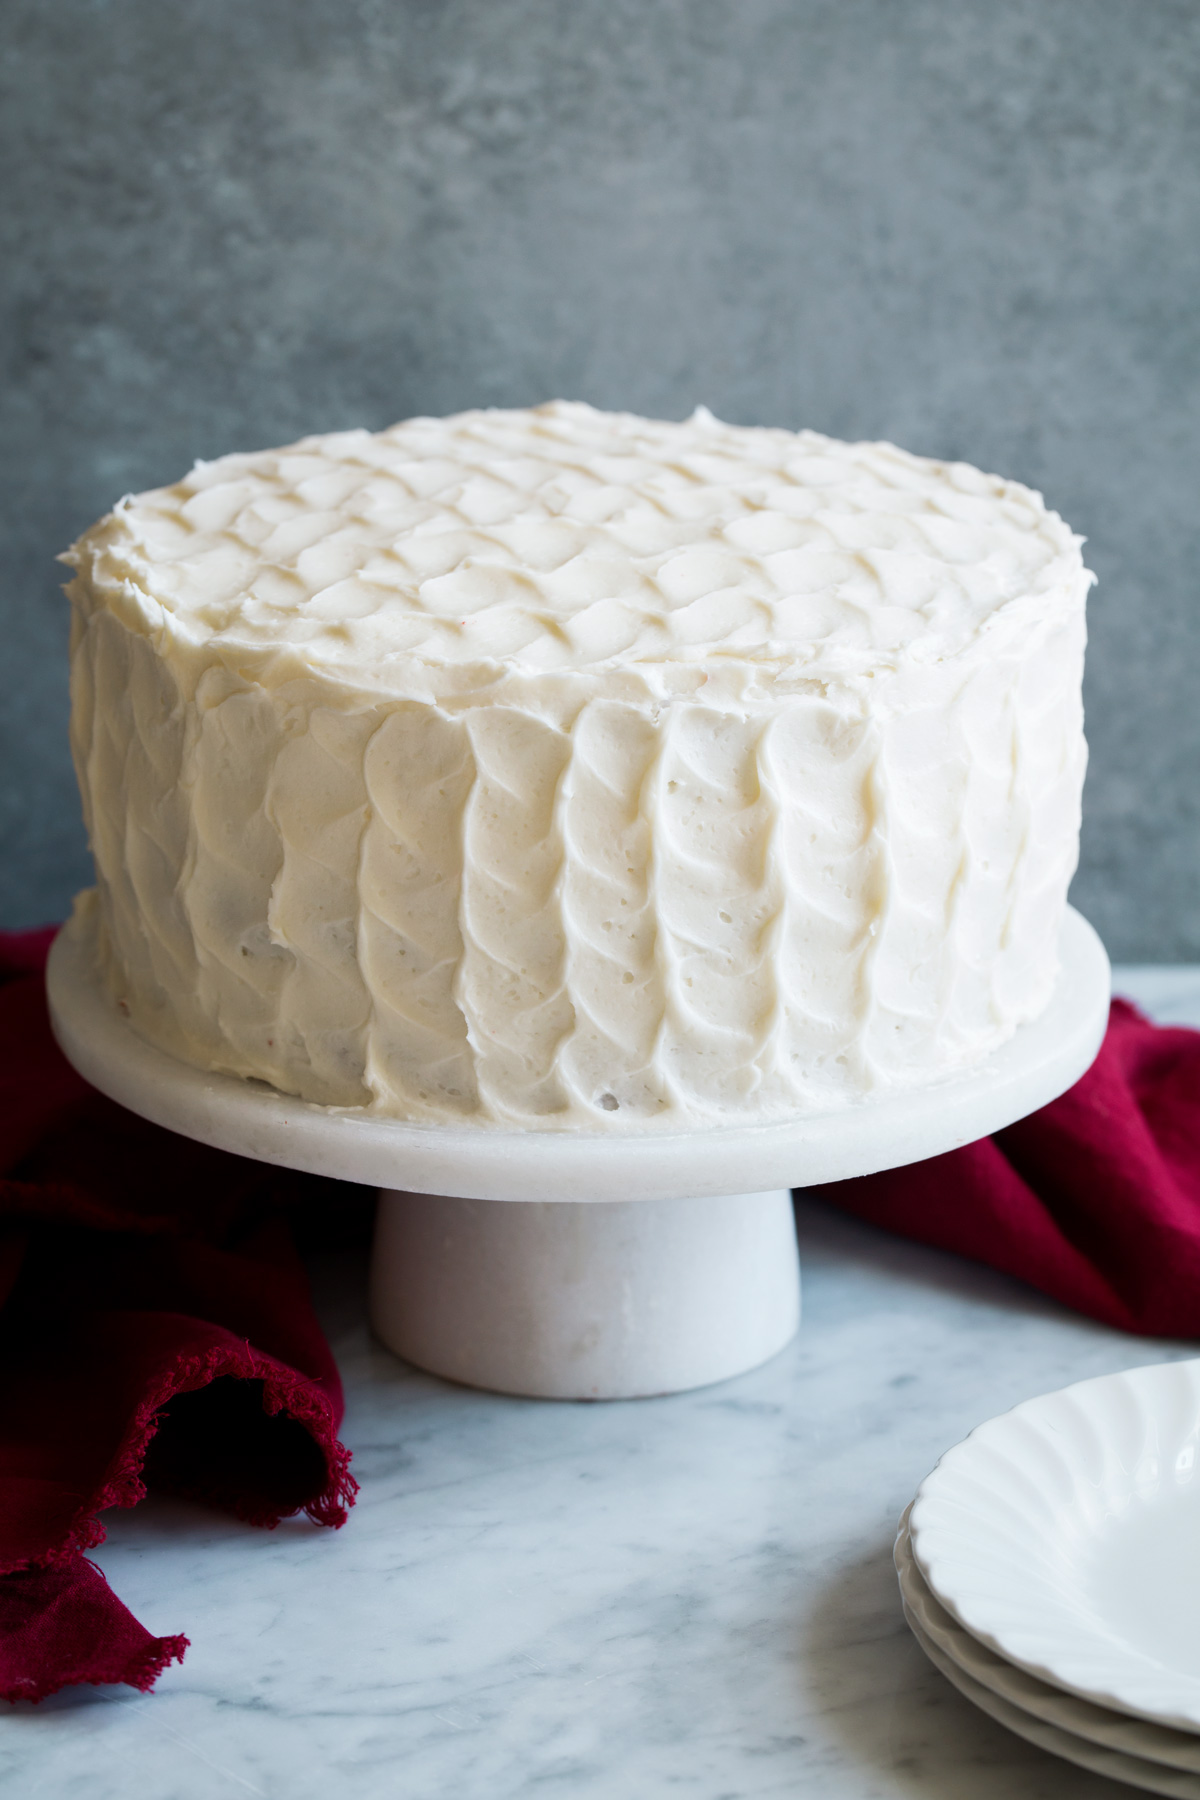 Whole red velvet cake covered in cream cheese frosting with a ruffled design. Cake is sitting on a marble cake stand.